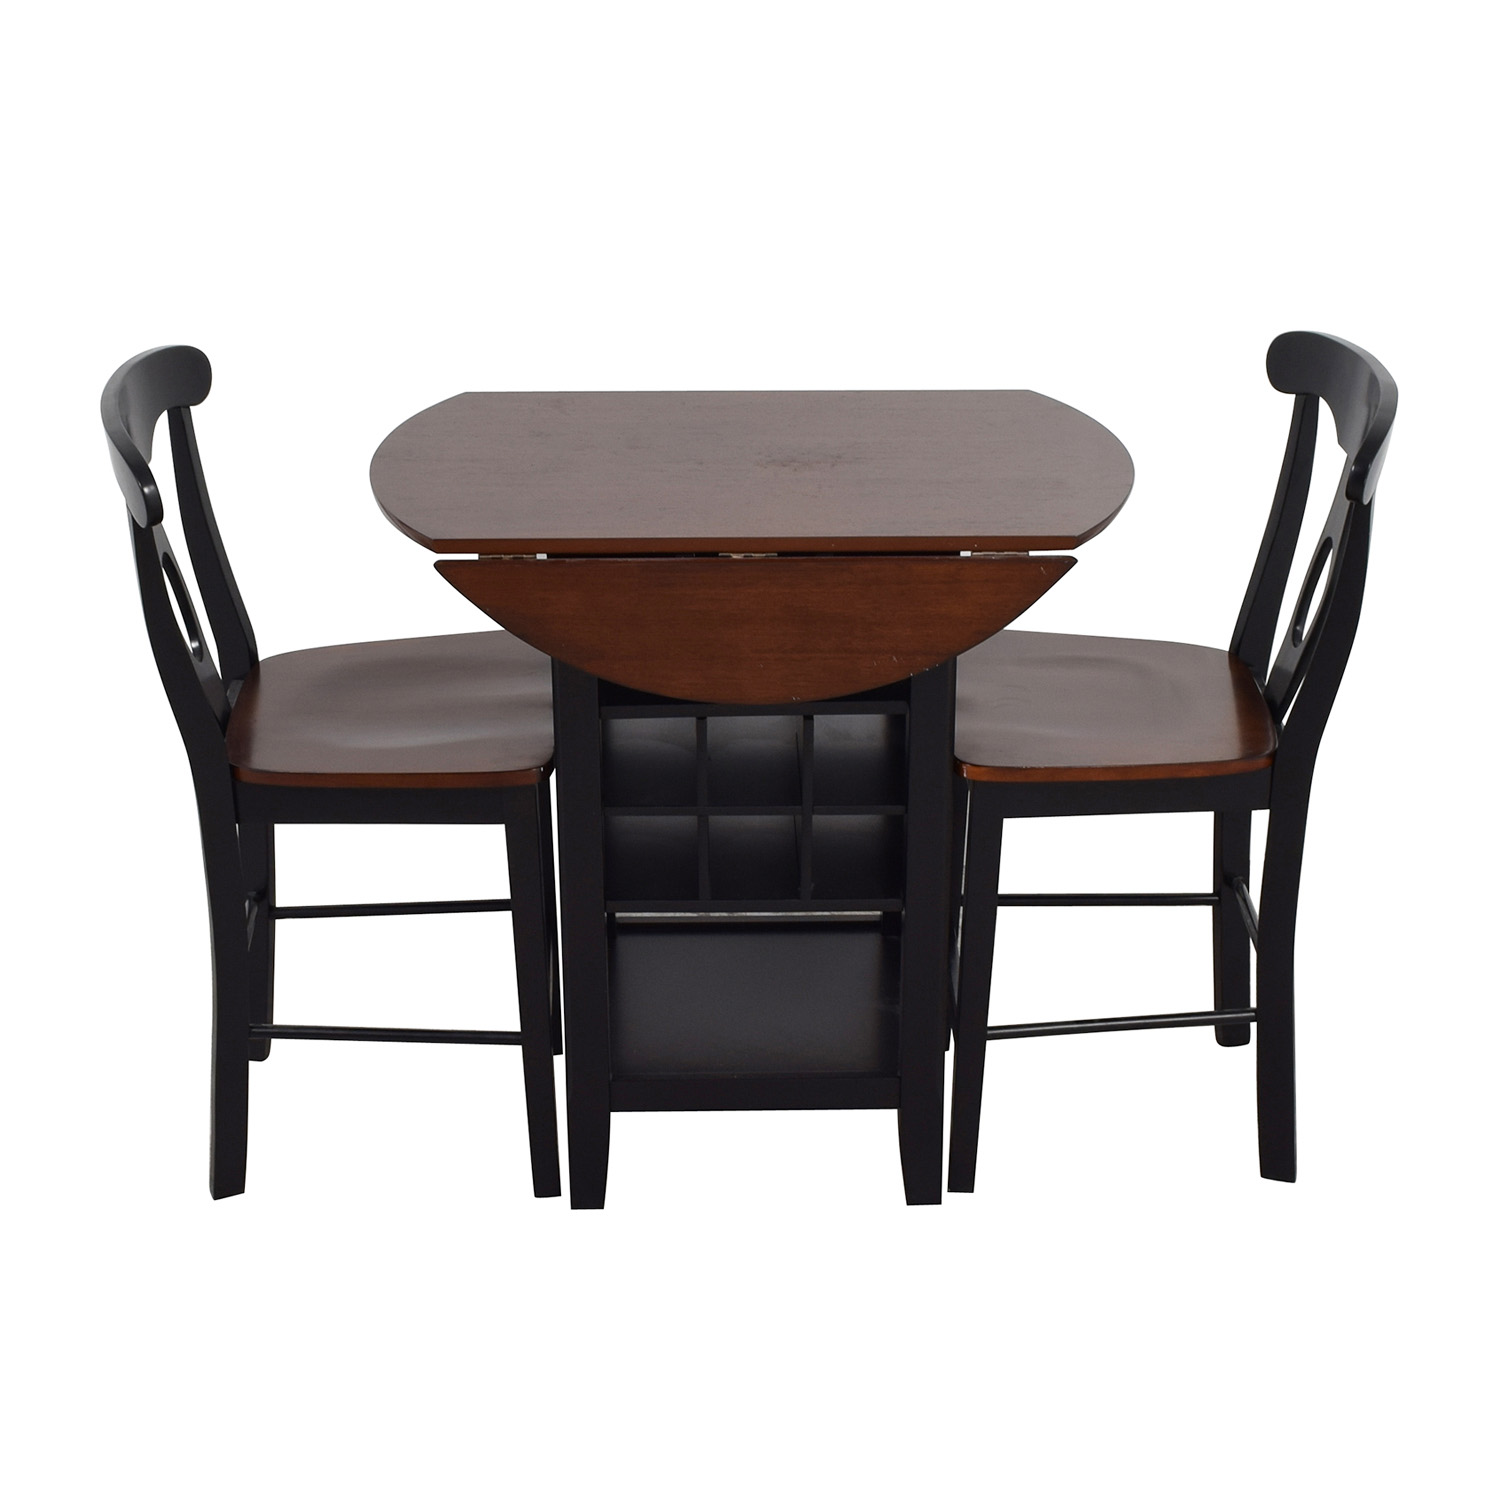 Woodhaven Hill Woodhaven Hill Atwood Dining Set on sale